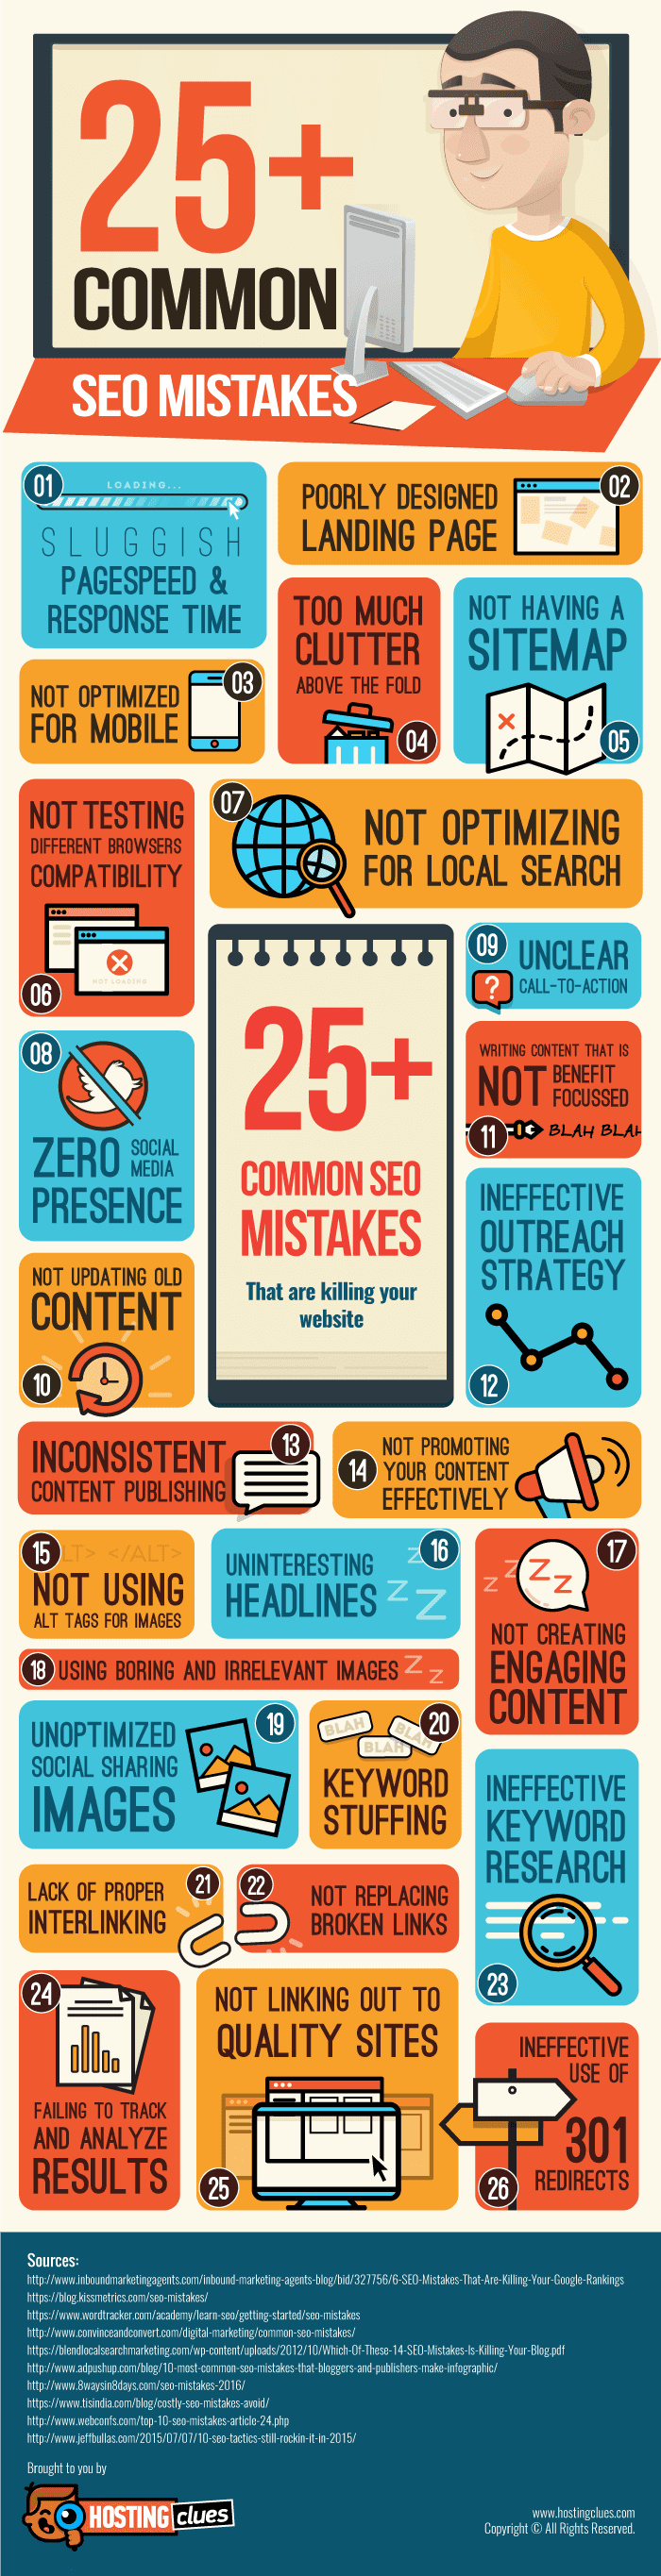 25+ Common SEO Mistakes That Are Killing Your Website – 2020 #Infographic